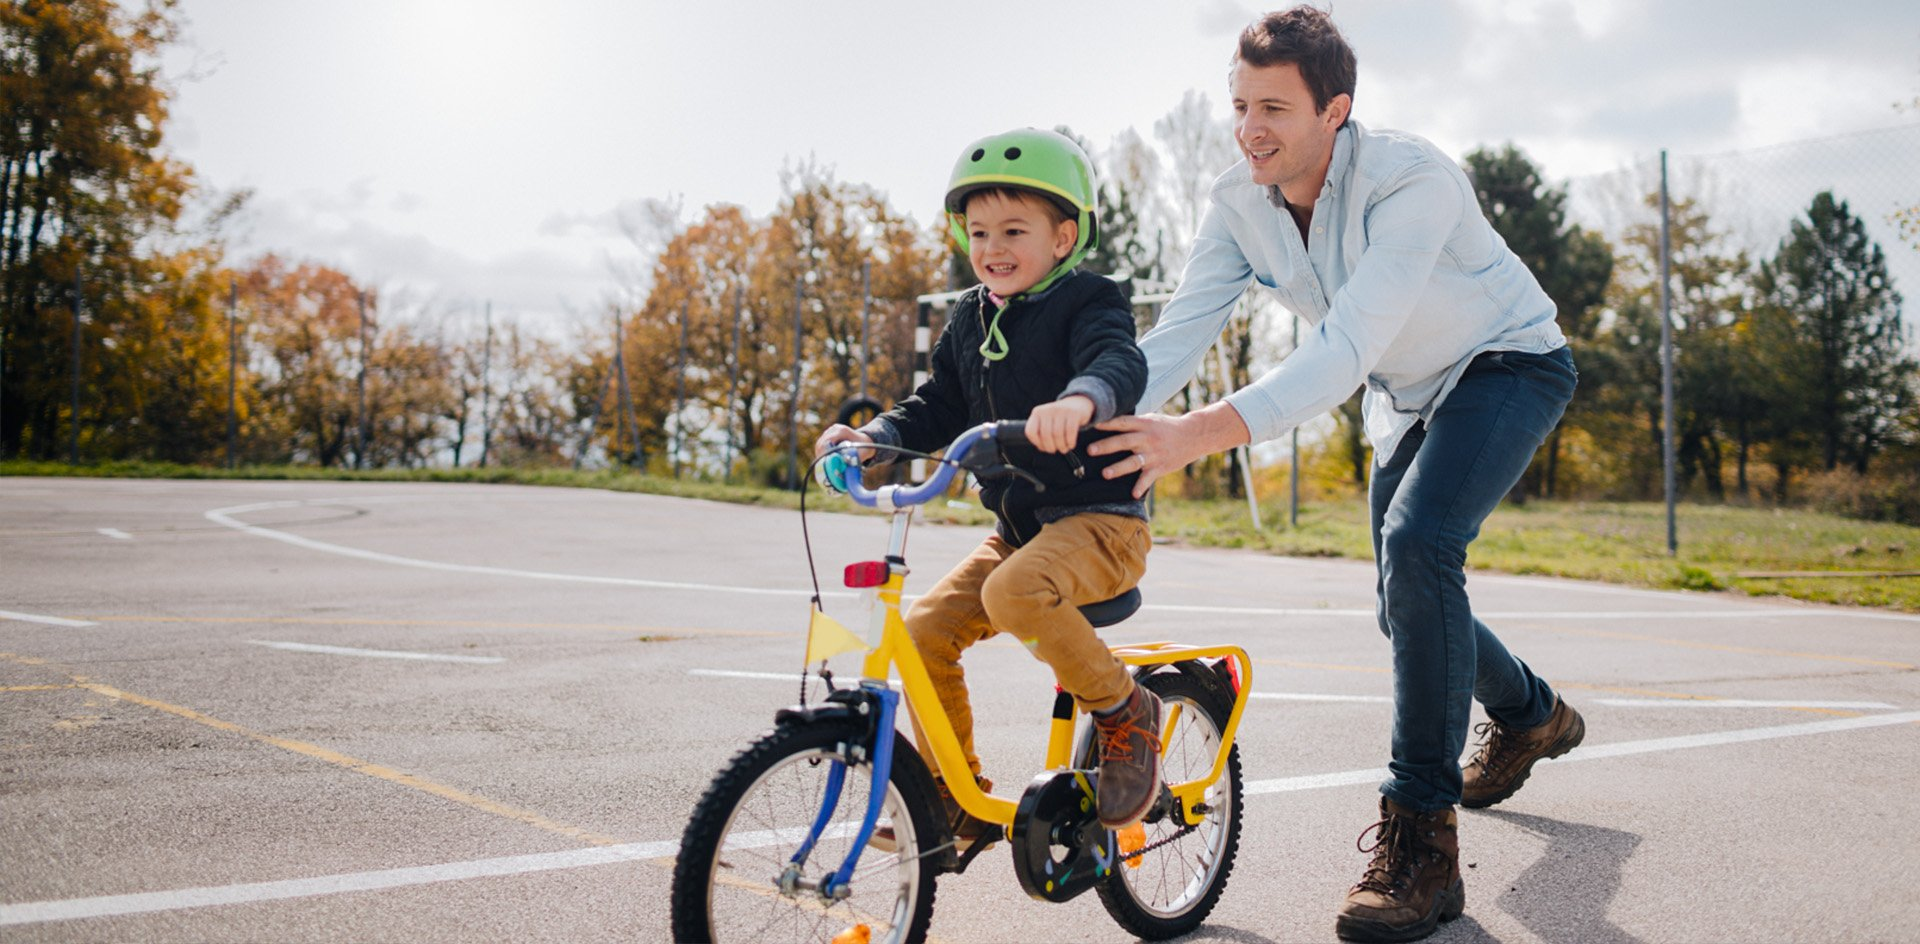 Dad helping son ride a bike